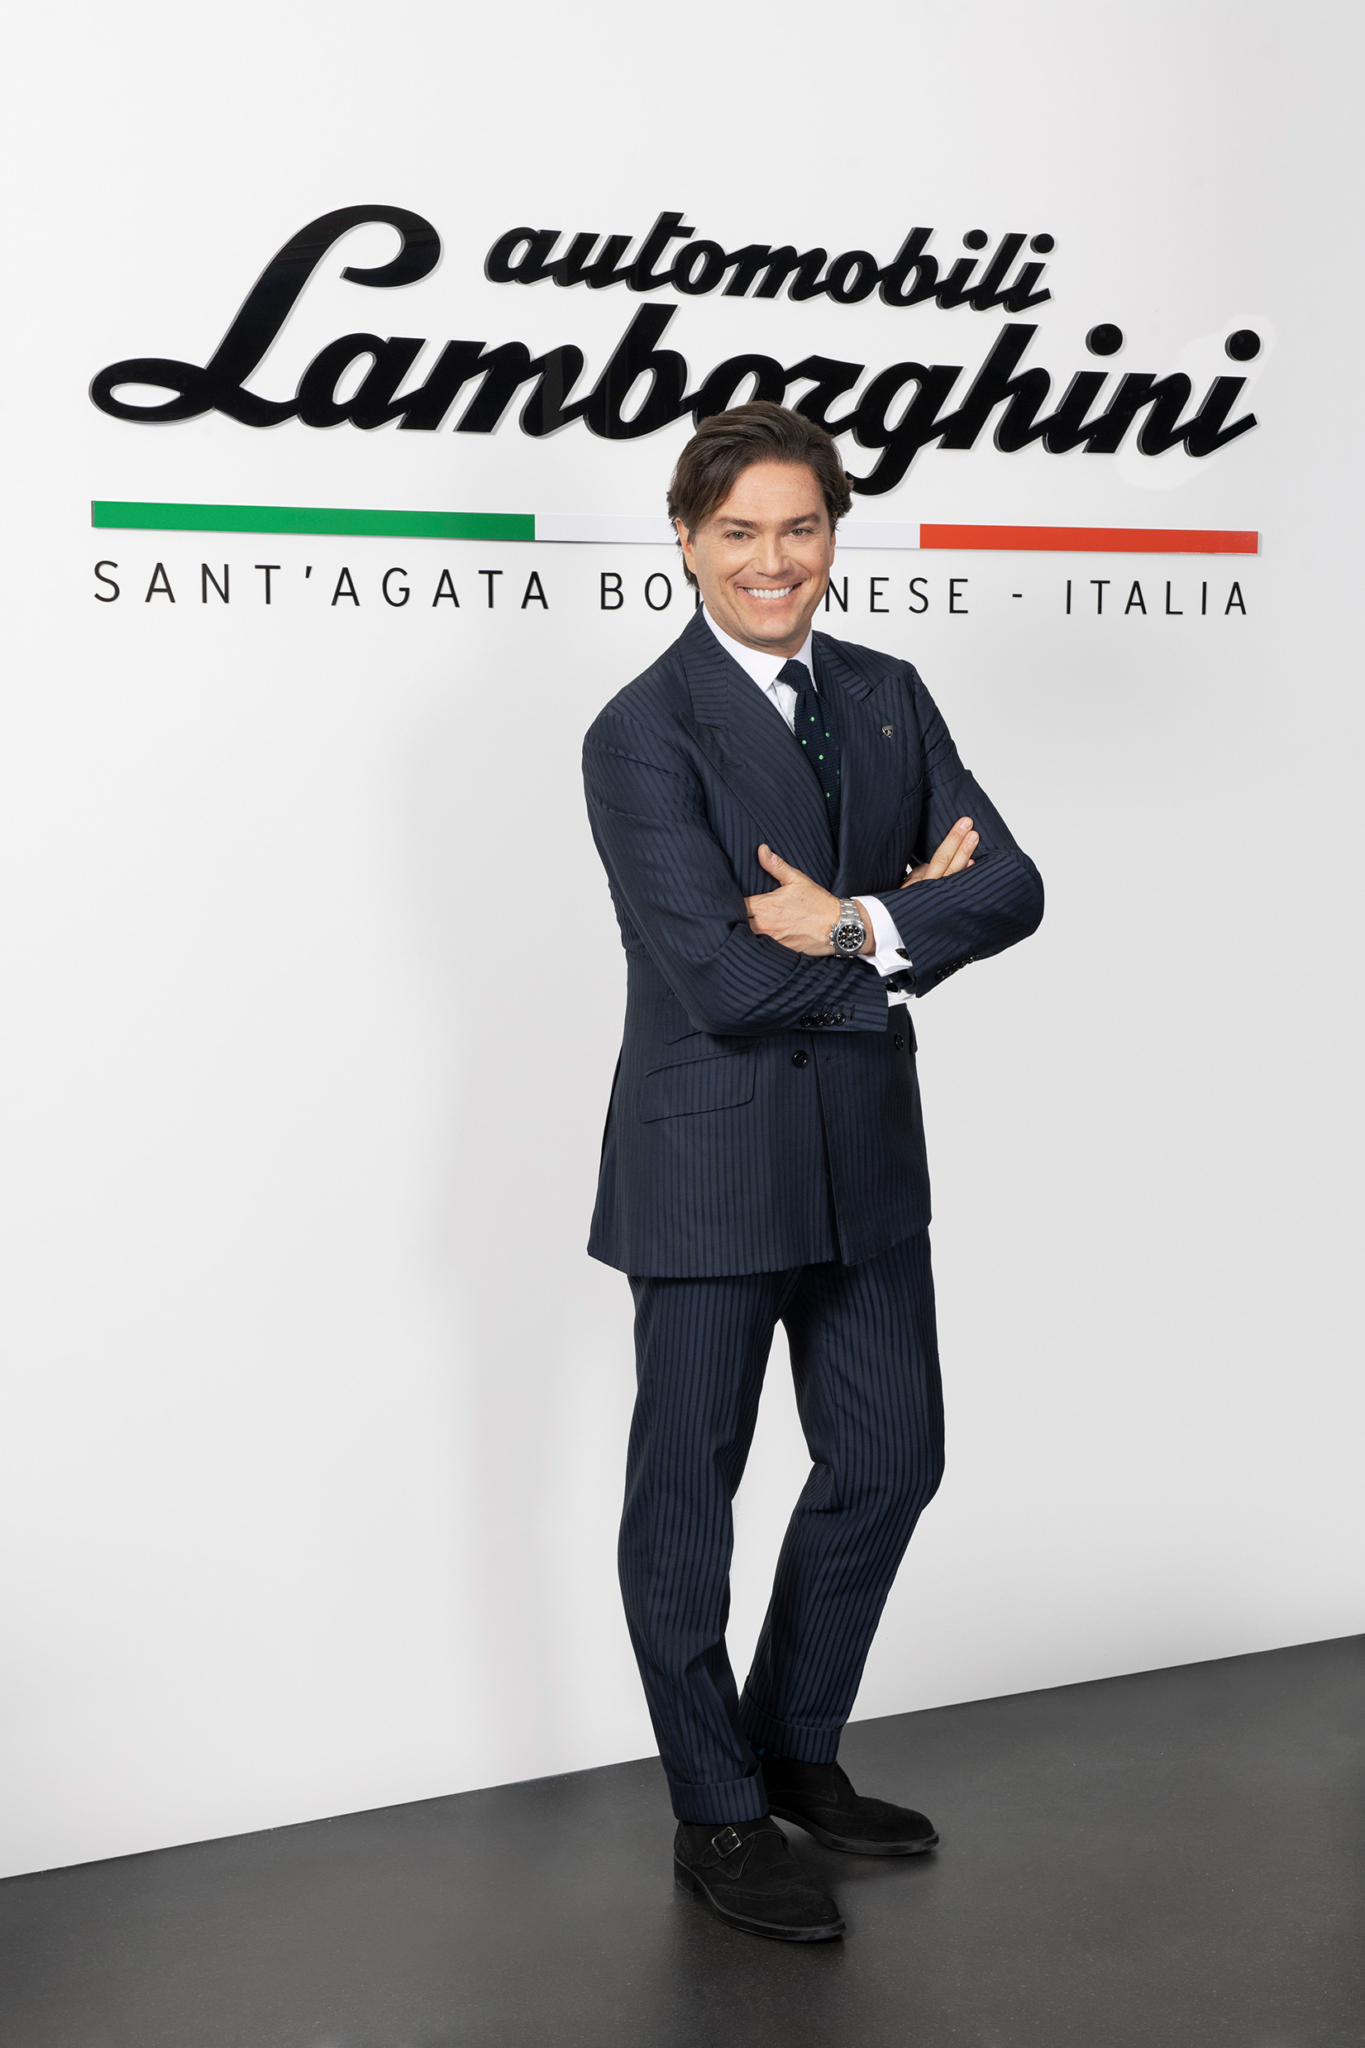 Giovanni Perosino Chief Commercial Officer of Automobili Lamborghini